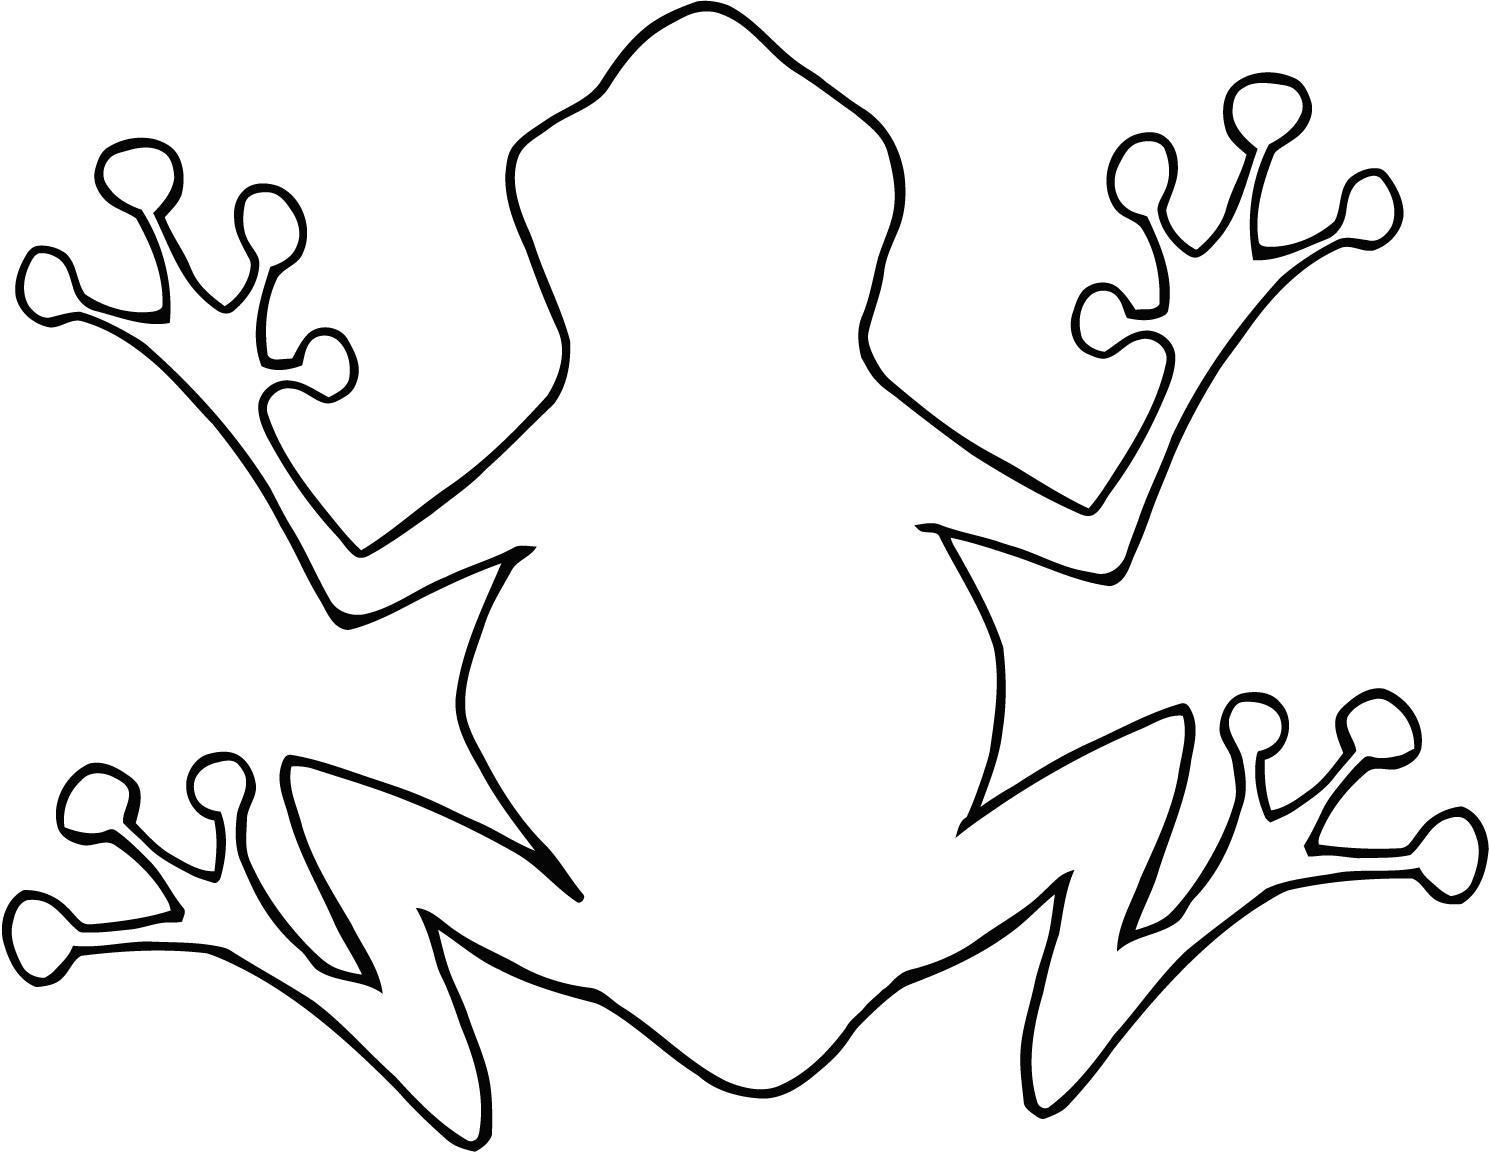 Tree Frog Outline Clipart Panda